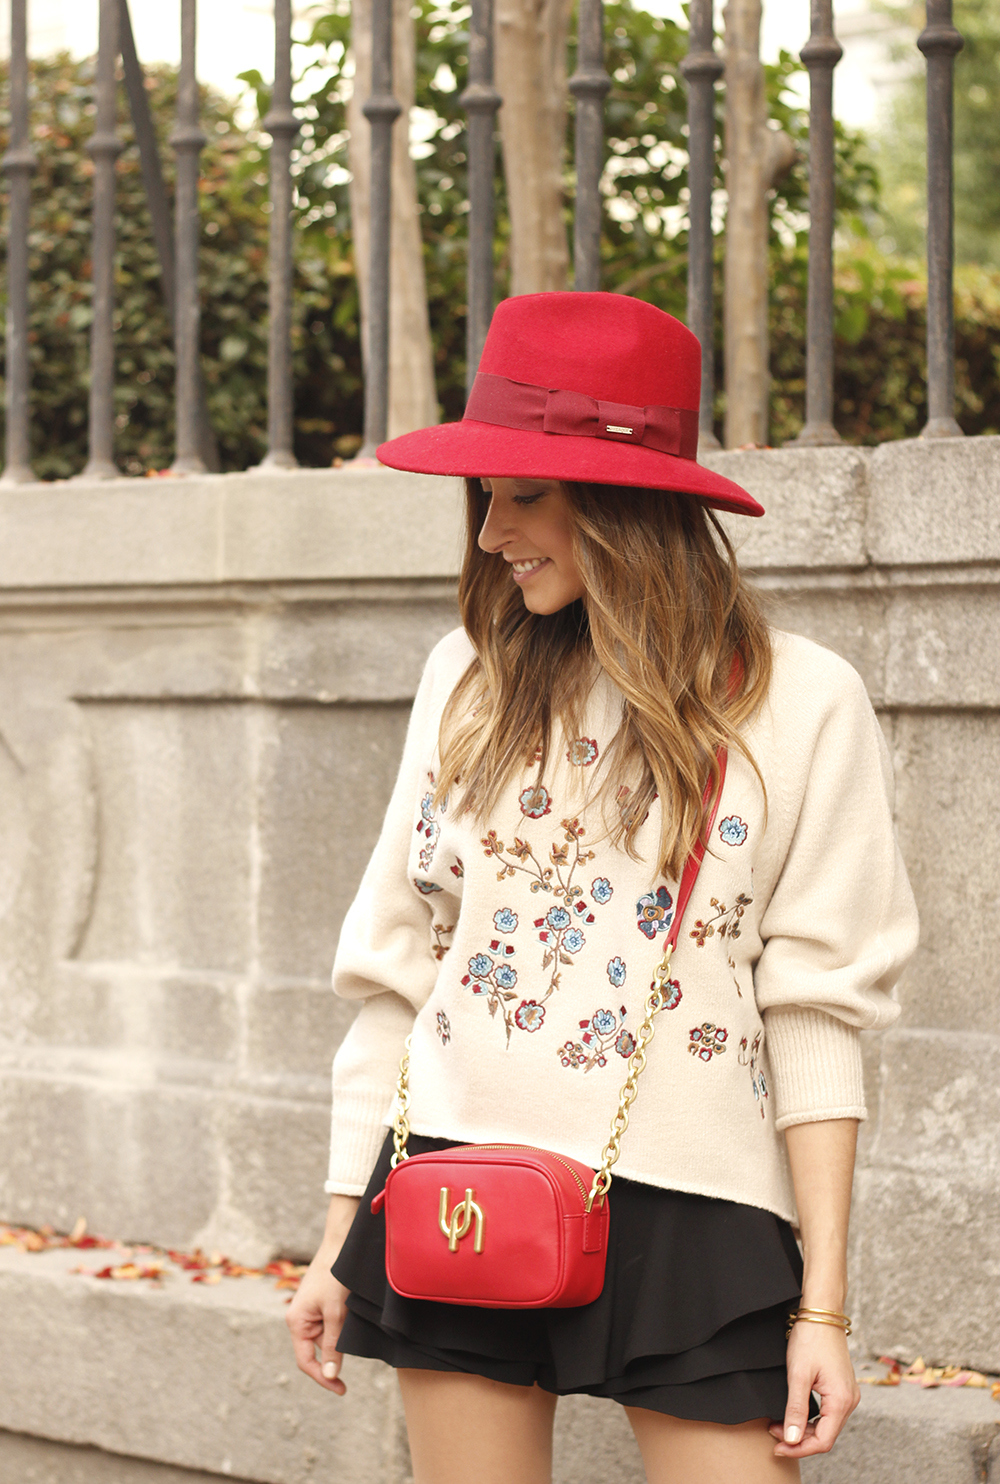 beige jersey with embroidered flowers over the knee black boots red hat street style fashion inspiration outfit12